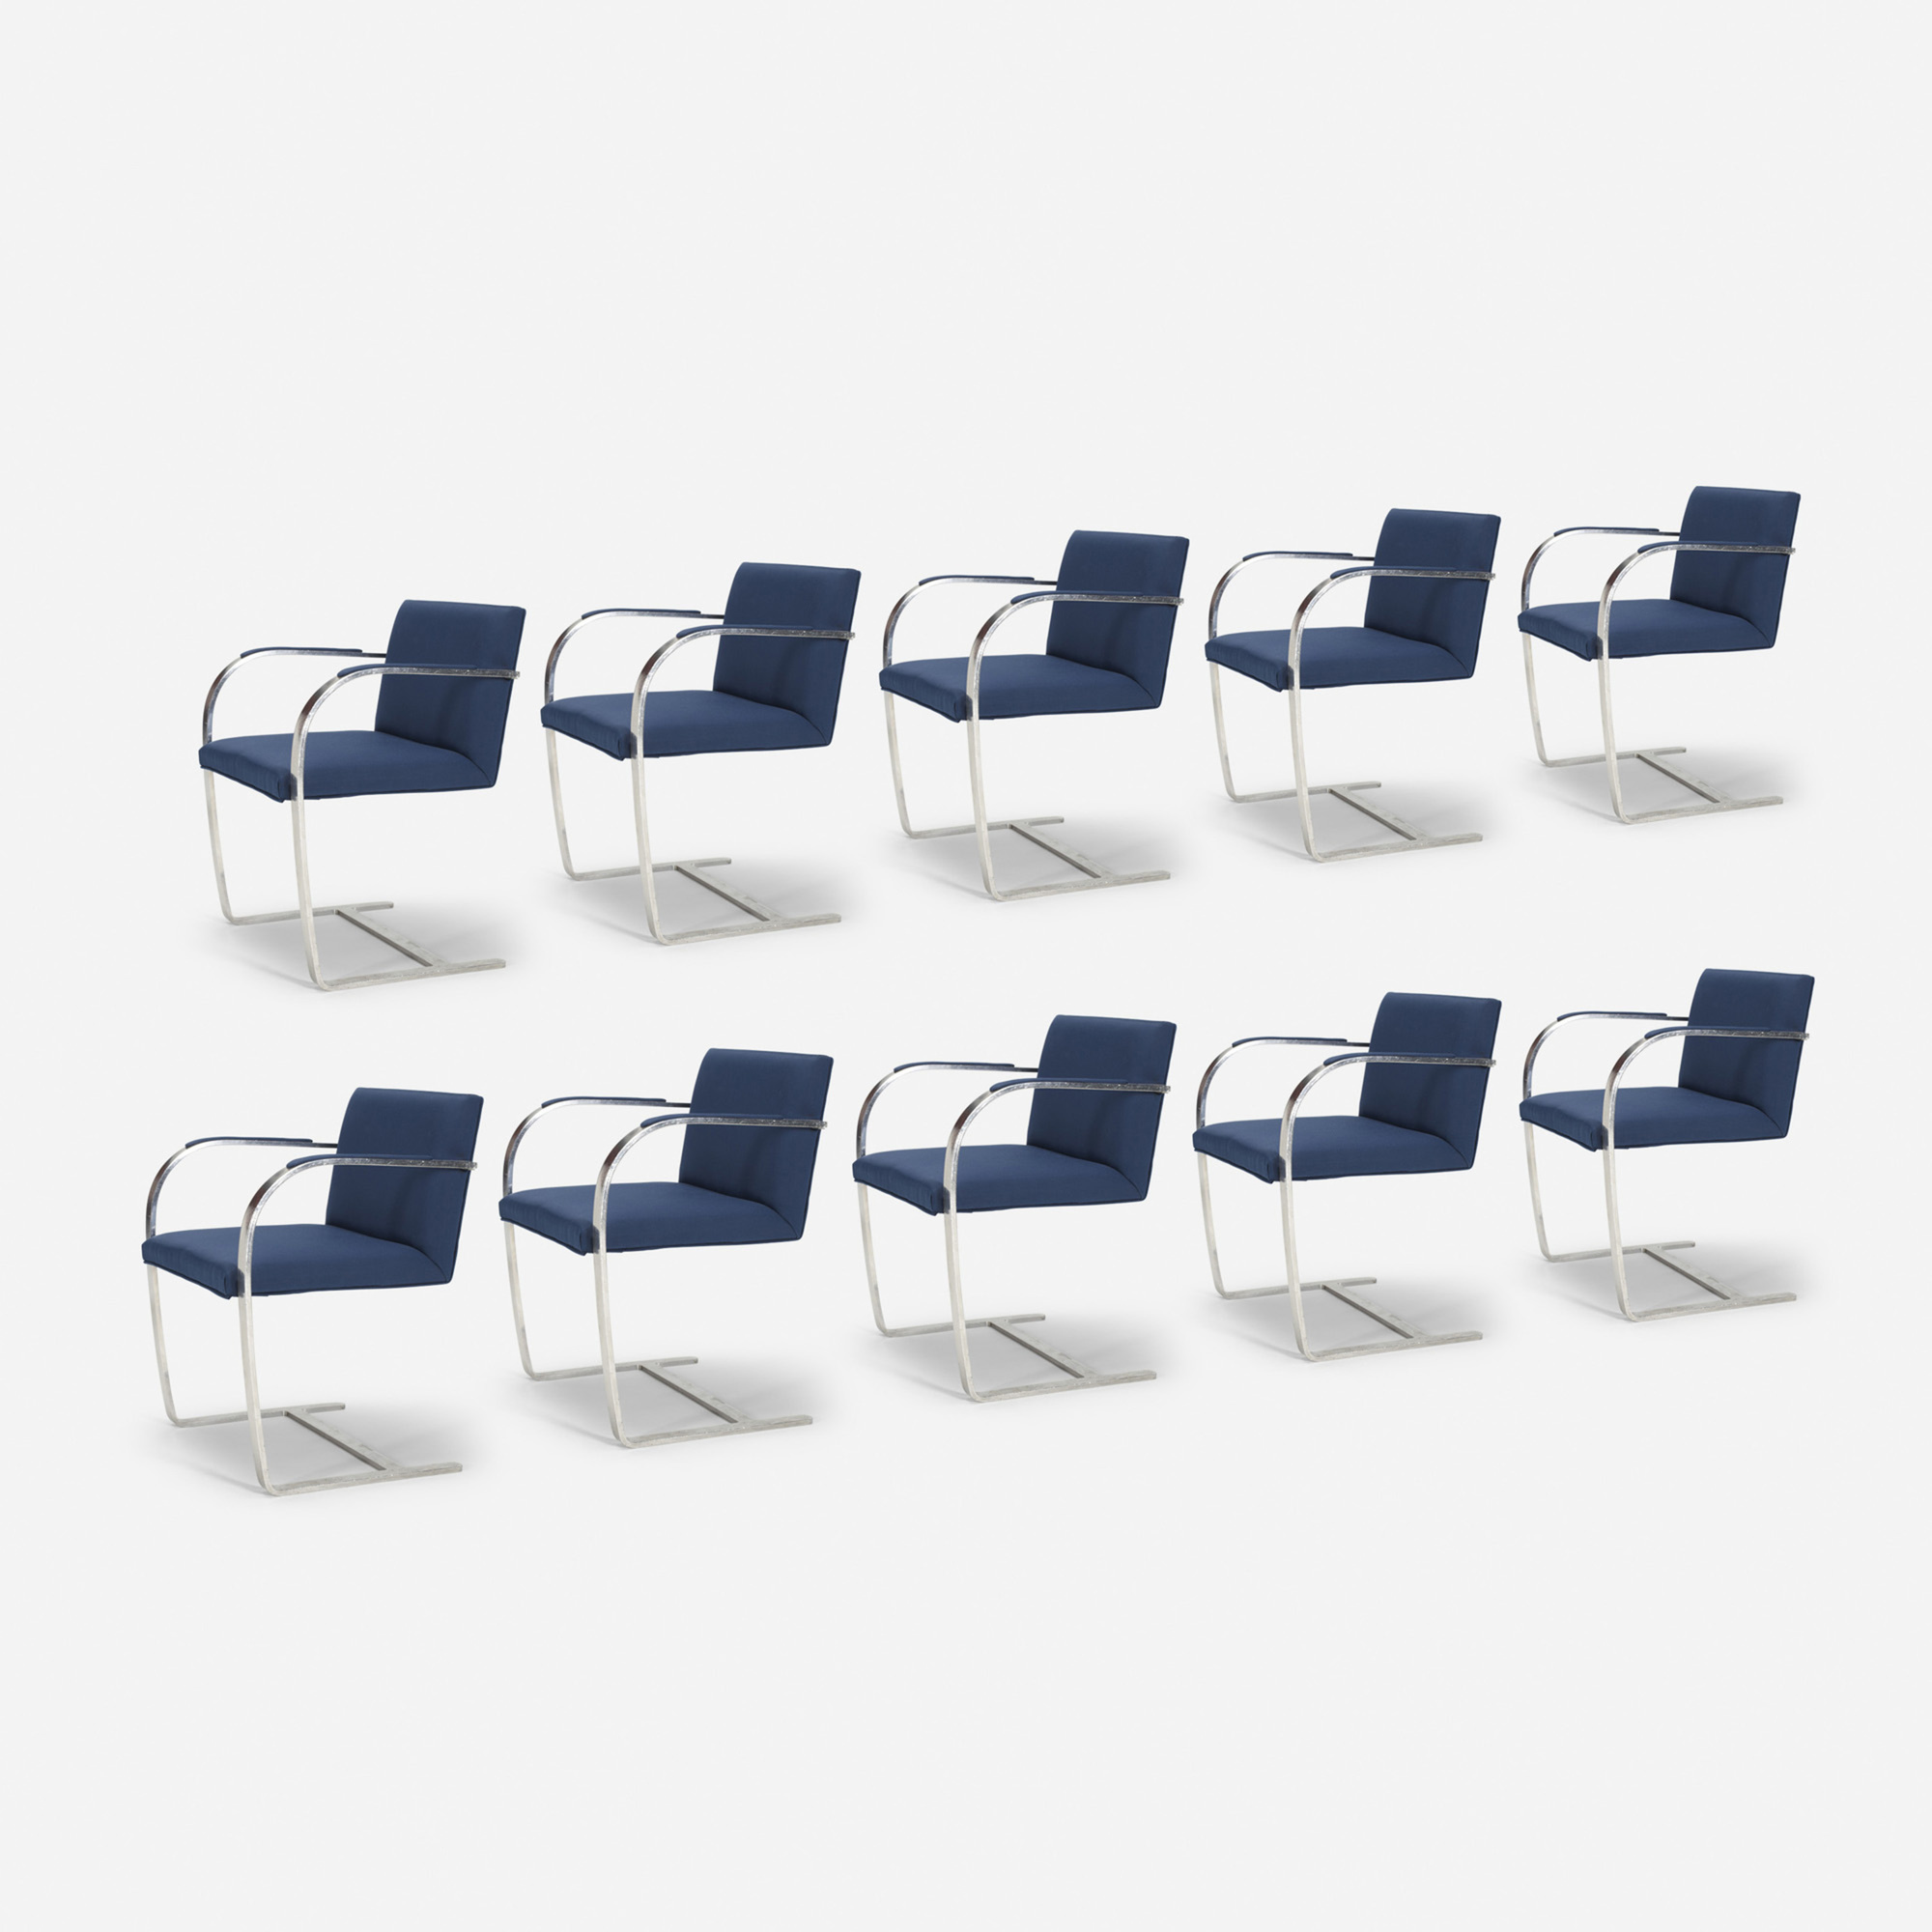 203: Ludwig Mies van der Rohe / Brno chairs from The Four Seasons, set of ten (1 of 1)